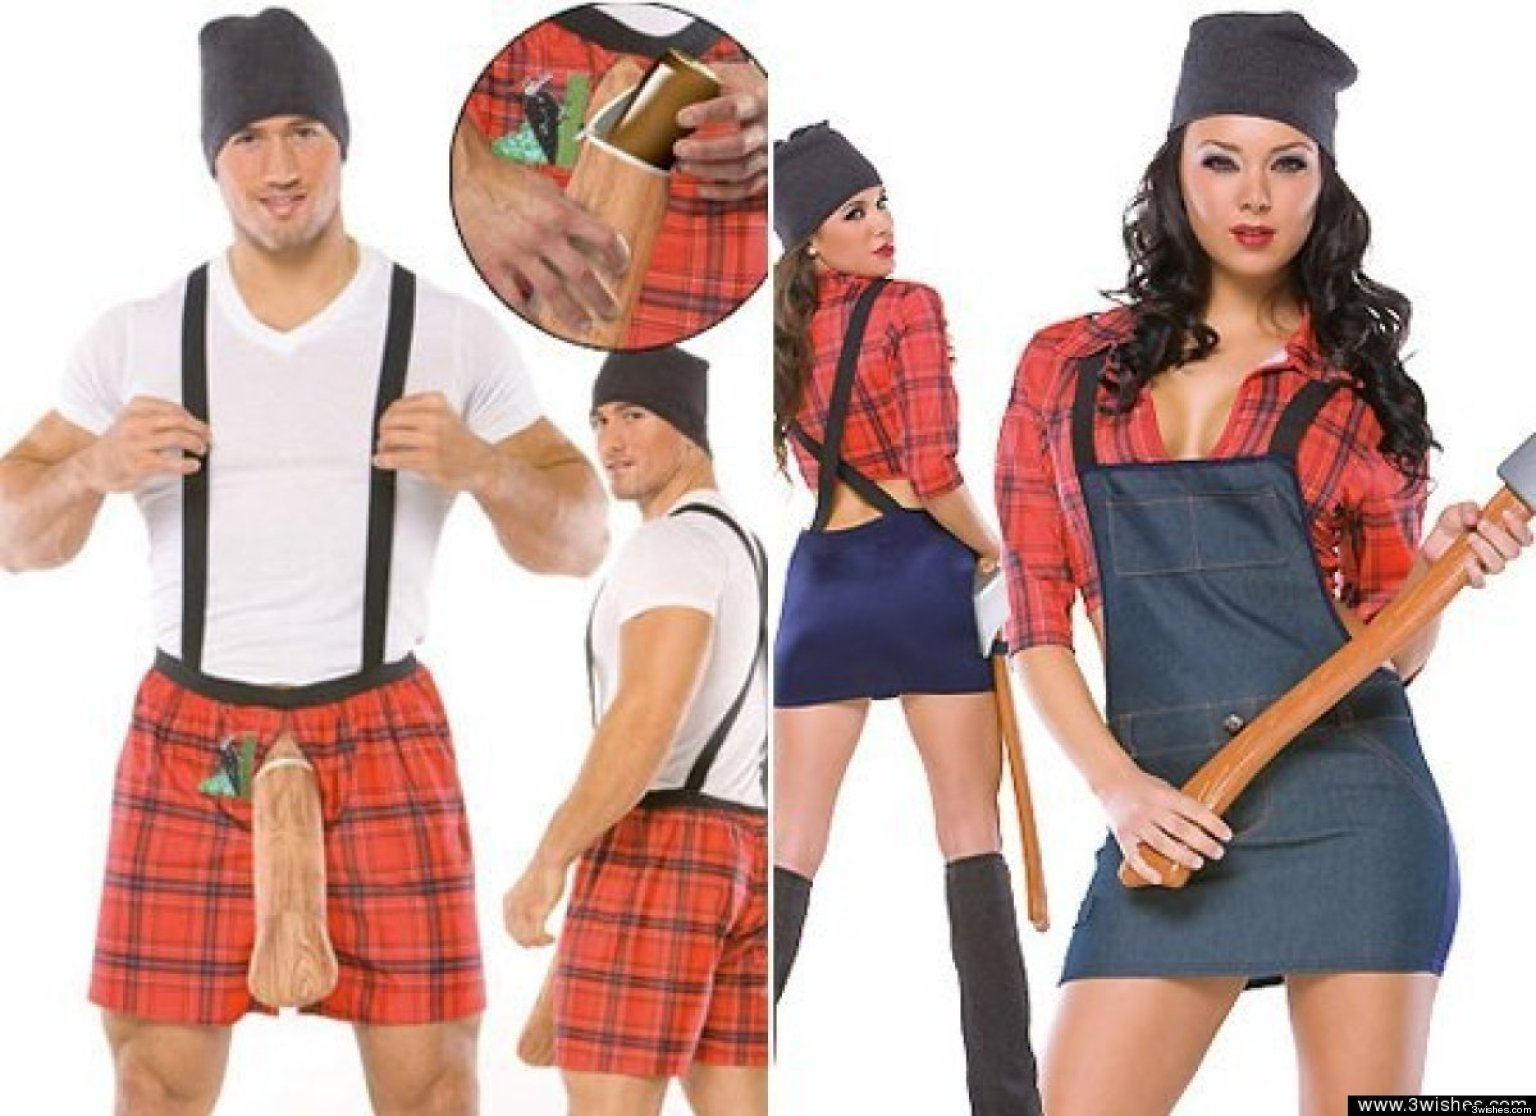 10 Awesome Funny Couple Halloween Costume Ideas couples costumes the most awkward couples halloween funny costume  sc 1 st  Unique Ideas 2018 & 10 Awesome Funny Couple Halloween Costume Ideas